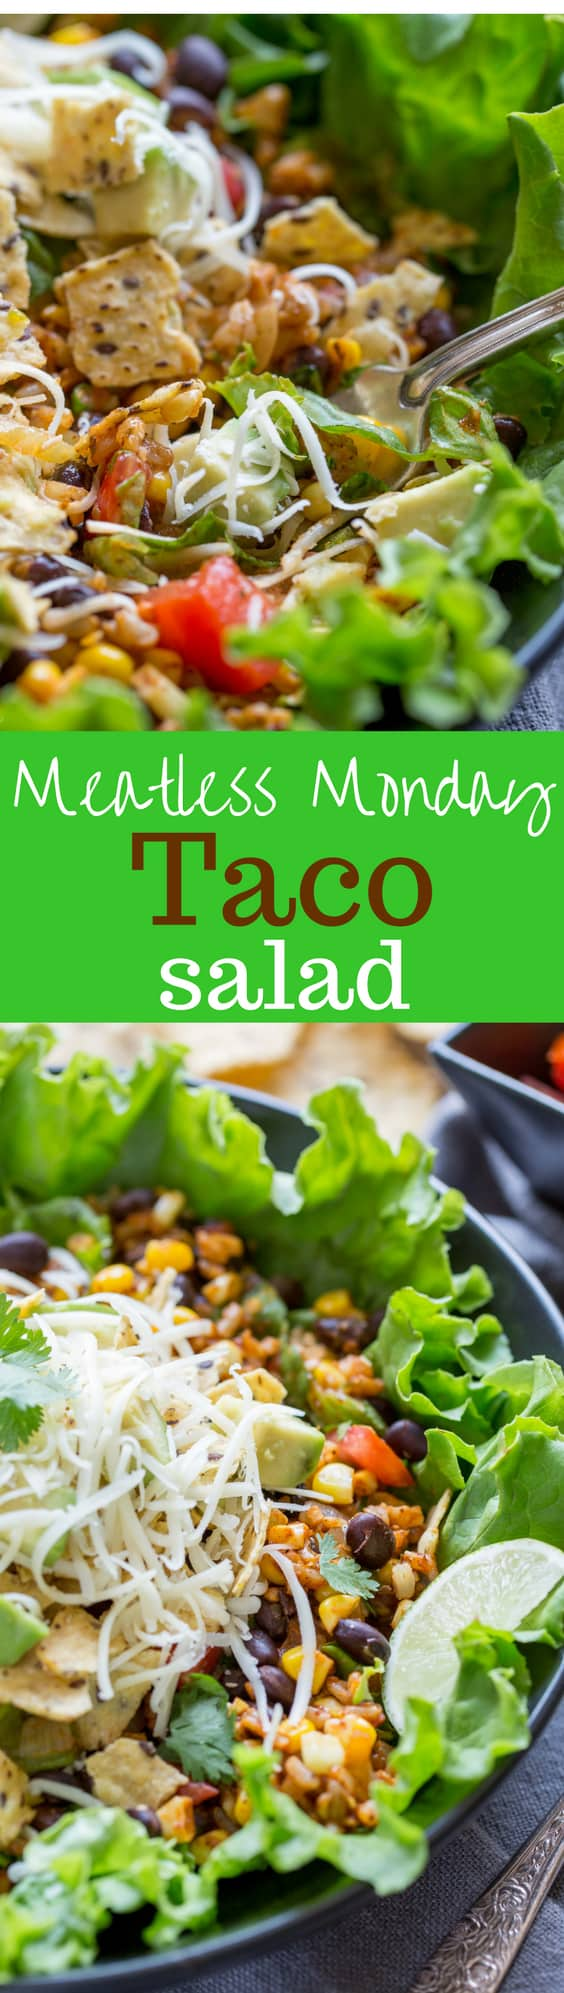 Meatless Monday Taco Salad - a deliciously spiced vegetarian salad layered with summer fresh corn and tomatoes, cheese, beans and a tasty homemade salsa  www.savingdessert.com